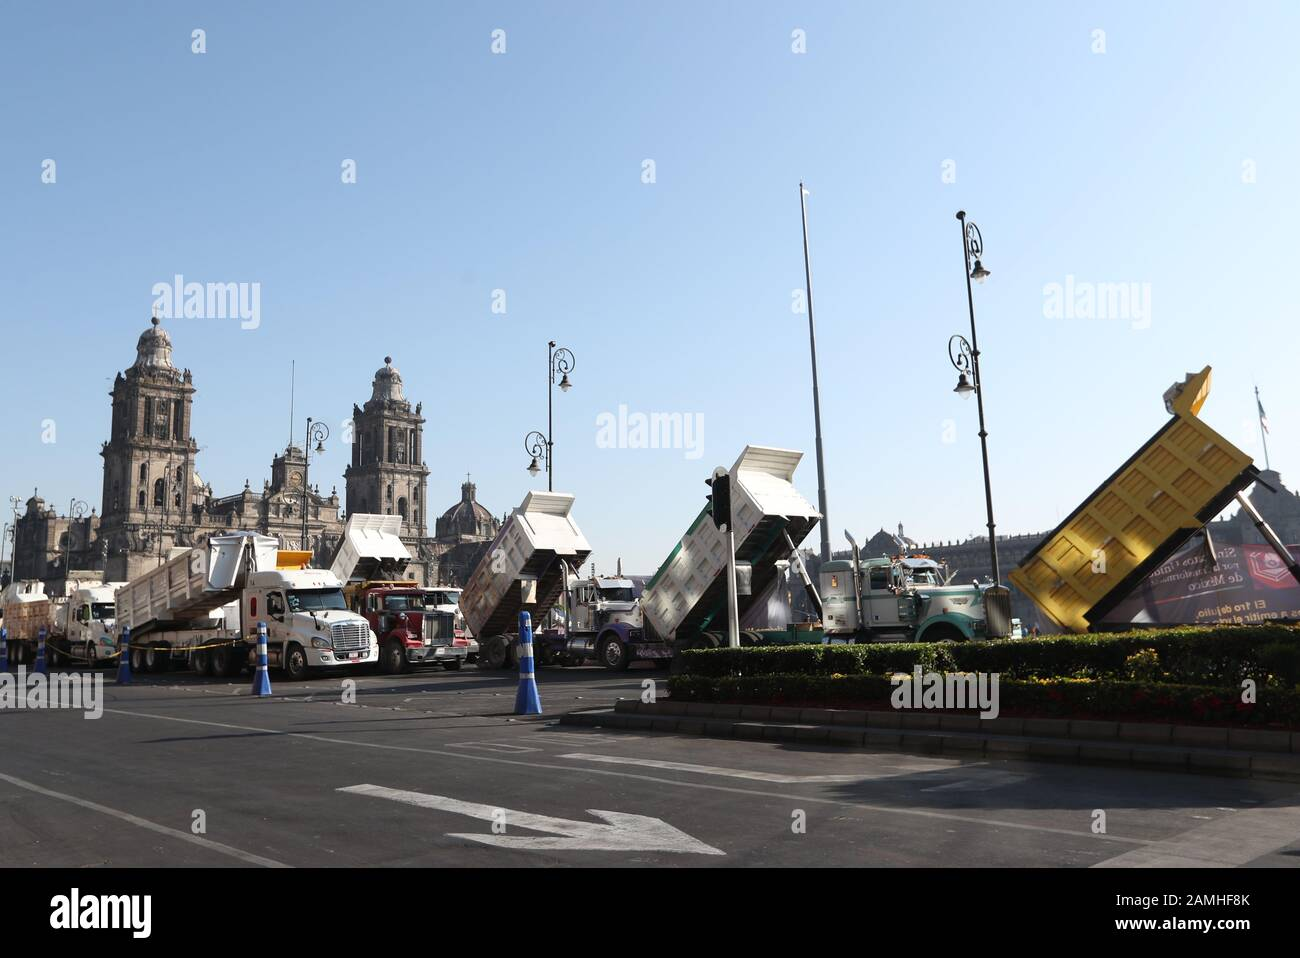 Mexico City, Mexico. 13th Jan, 2020. General view this monday, of a protest of carriers in the Zocalo of Mexico City, Mexico 13 January 2020. Hundreds of cargo carriers blocked monday different accesses from Mexico City to protest against the conditions offered by the Government of Andres Manuel Lopez Obrador to work on the works of the new Santa Lucia airport. Credit: EFE News Agency/Alamy Live News Stock Photo